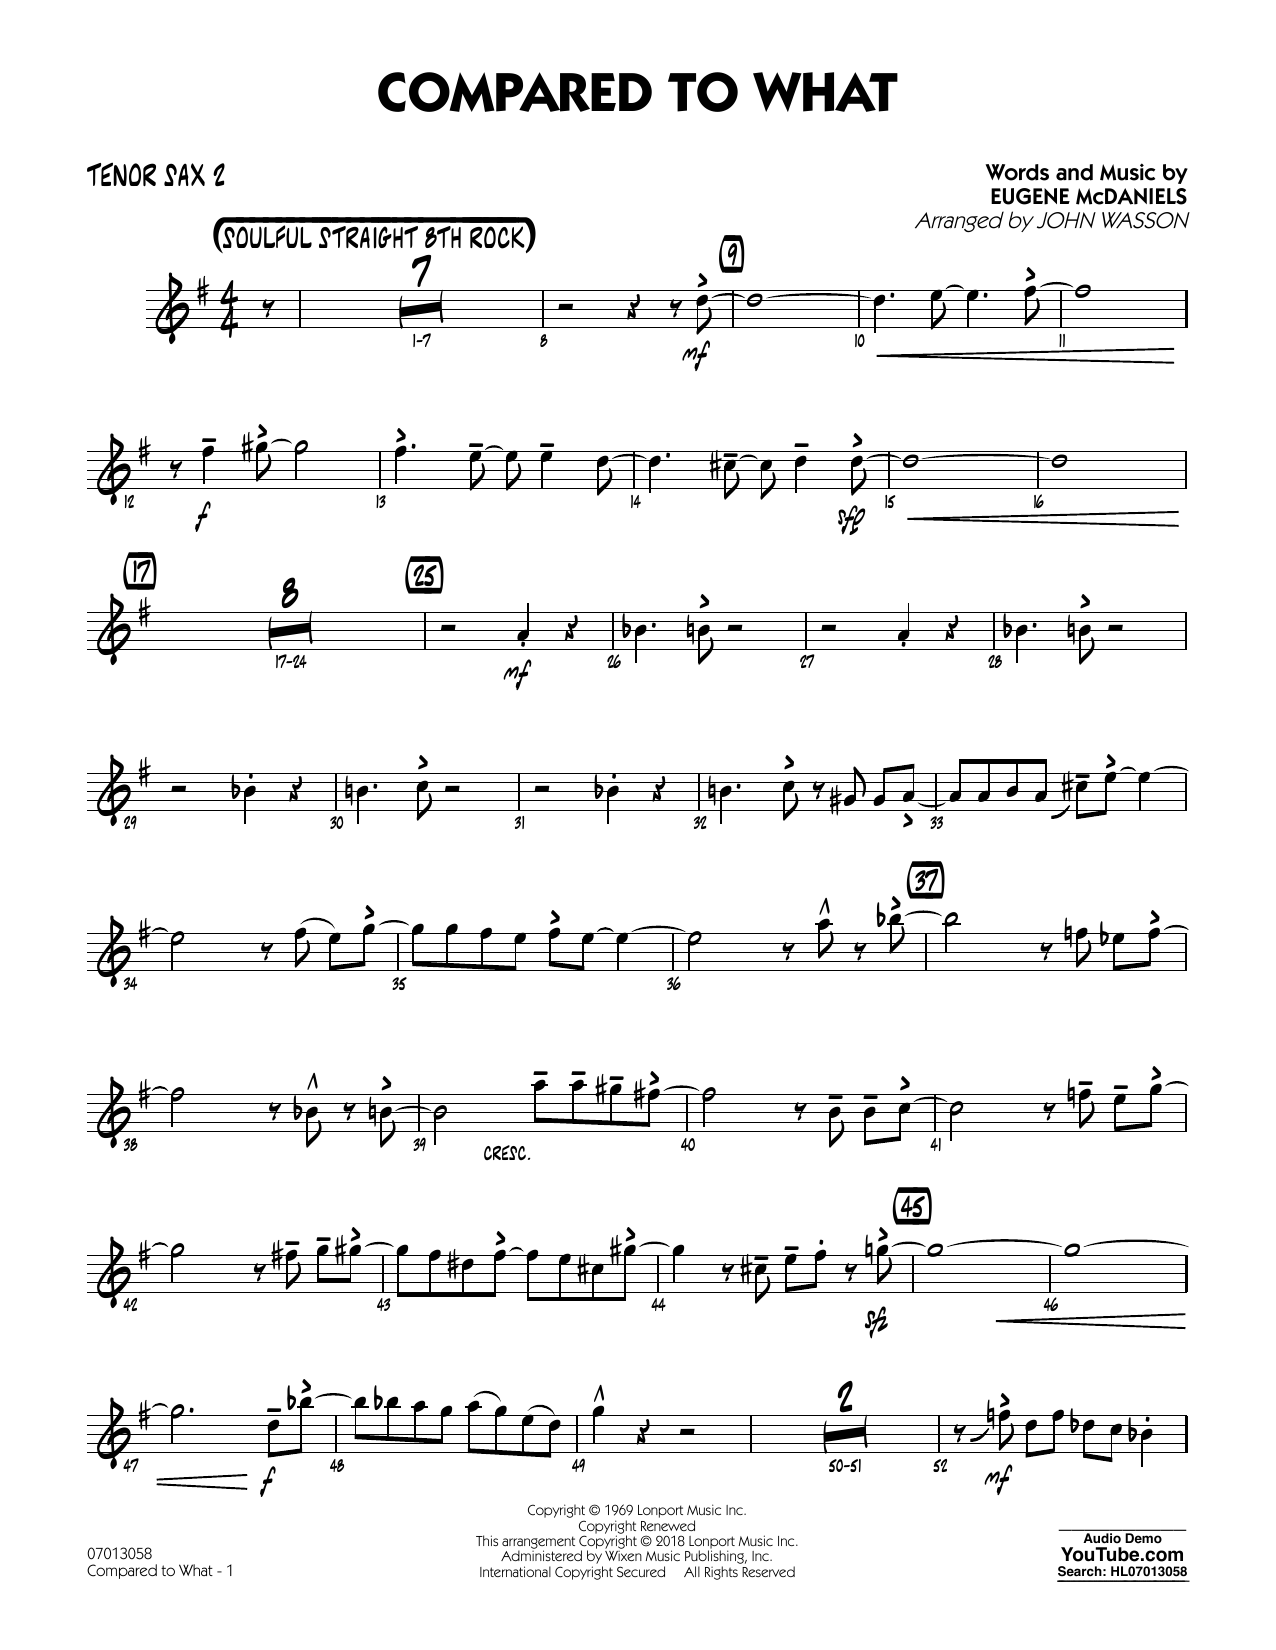 John Wasson Compared To What - Tenor Sax 2 sheet music notes and chords. Download Printable PDF.